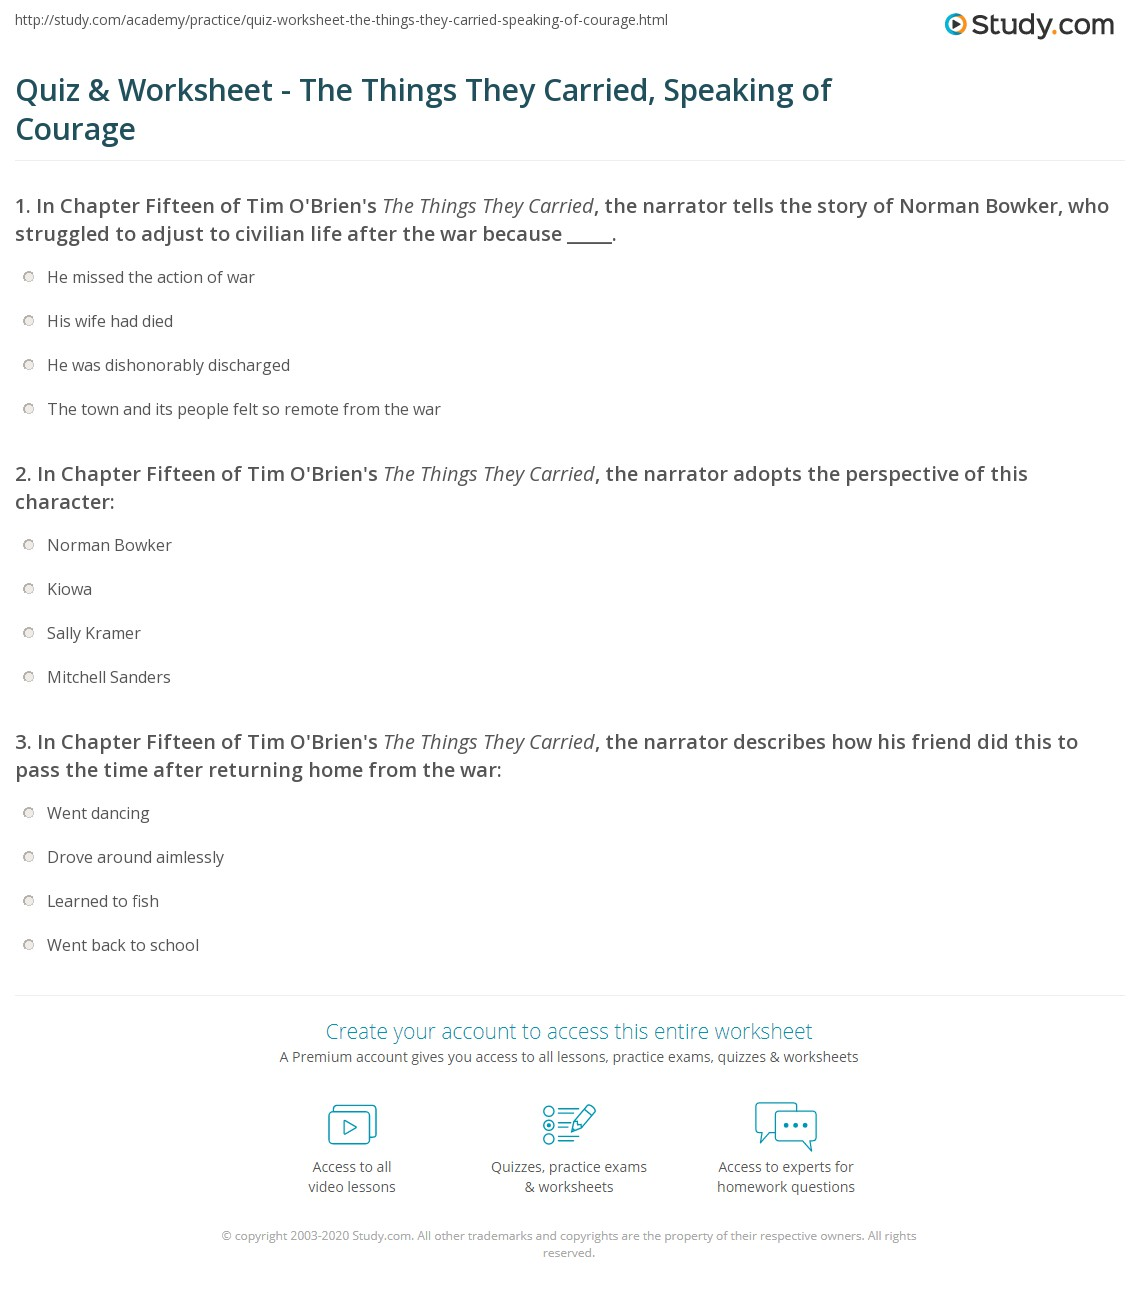 quiz worksheet the things they carried speaking of courage print the things they carried speaking of courage chapter 15 summary worksheet